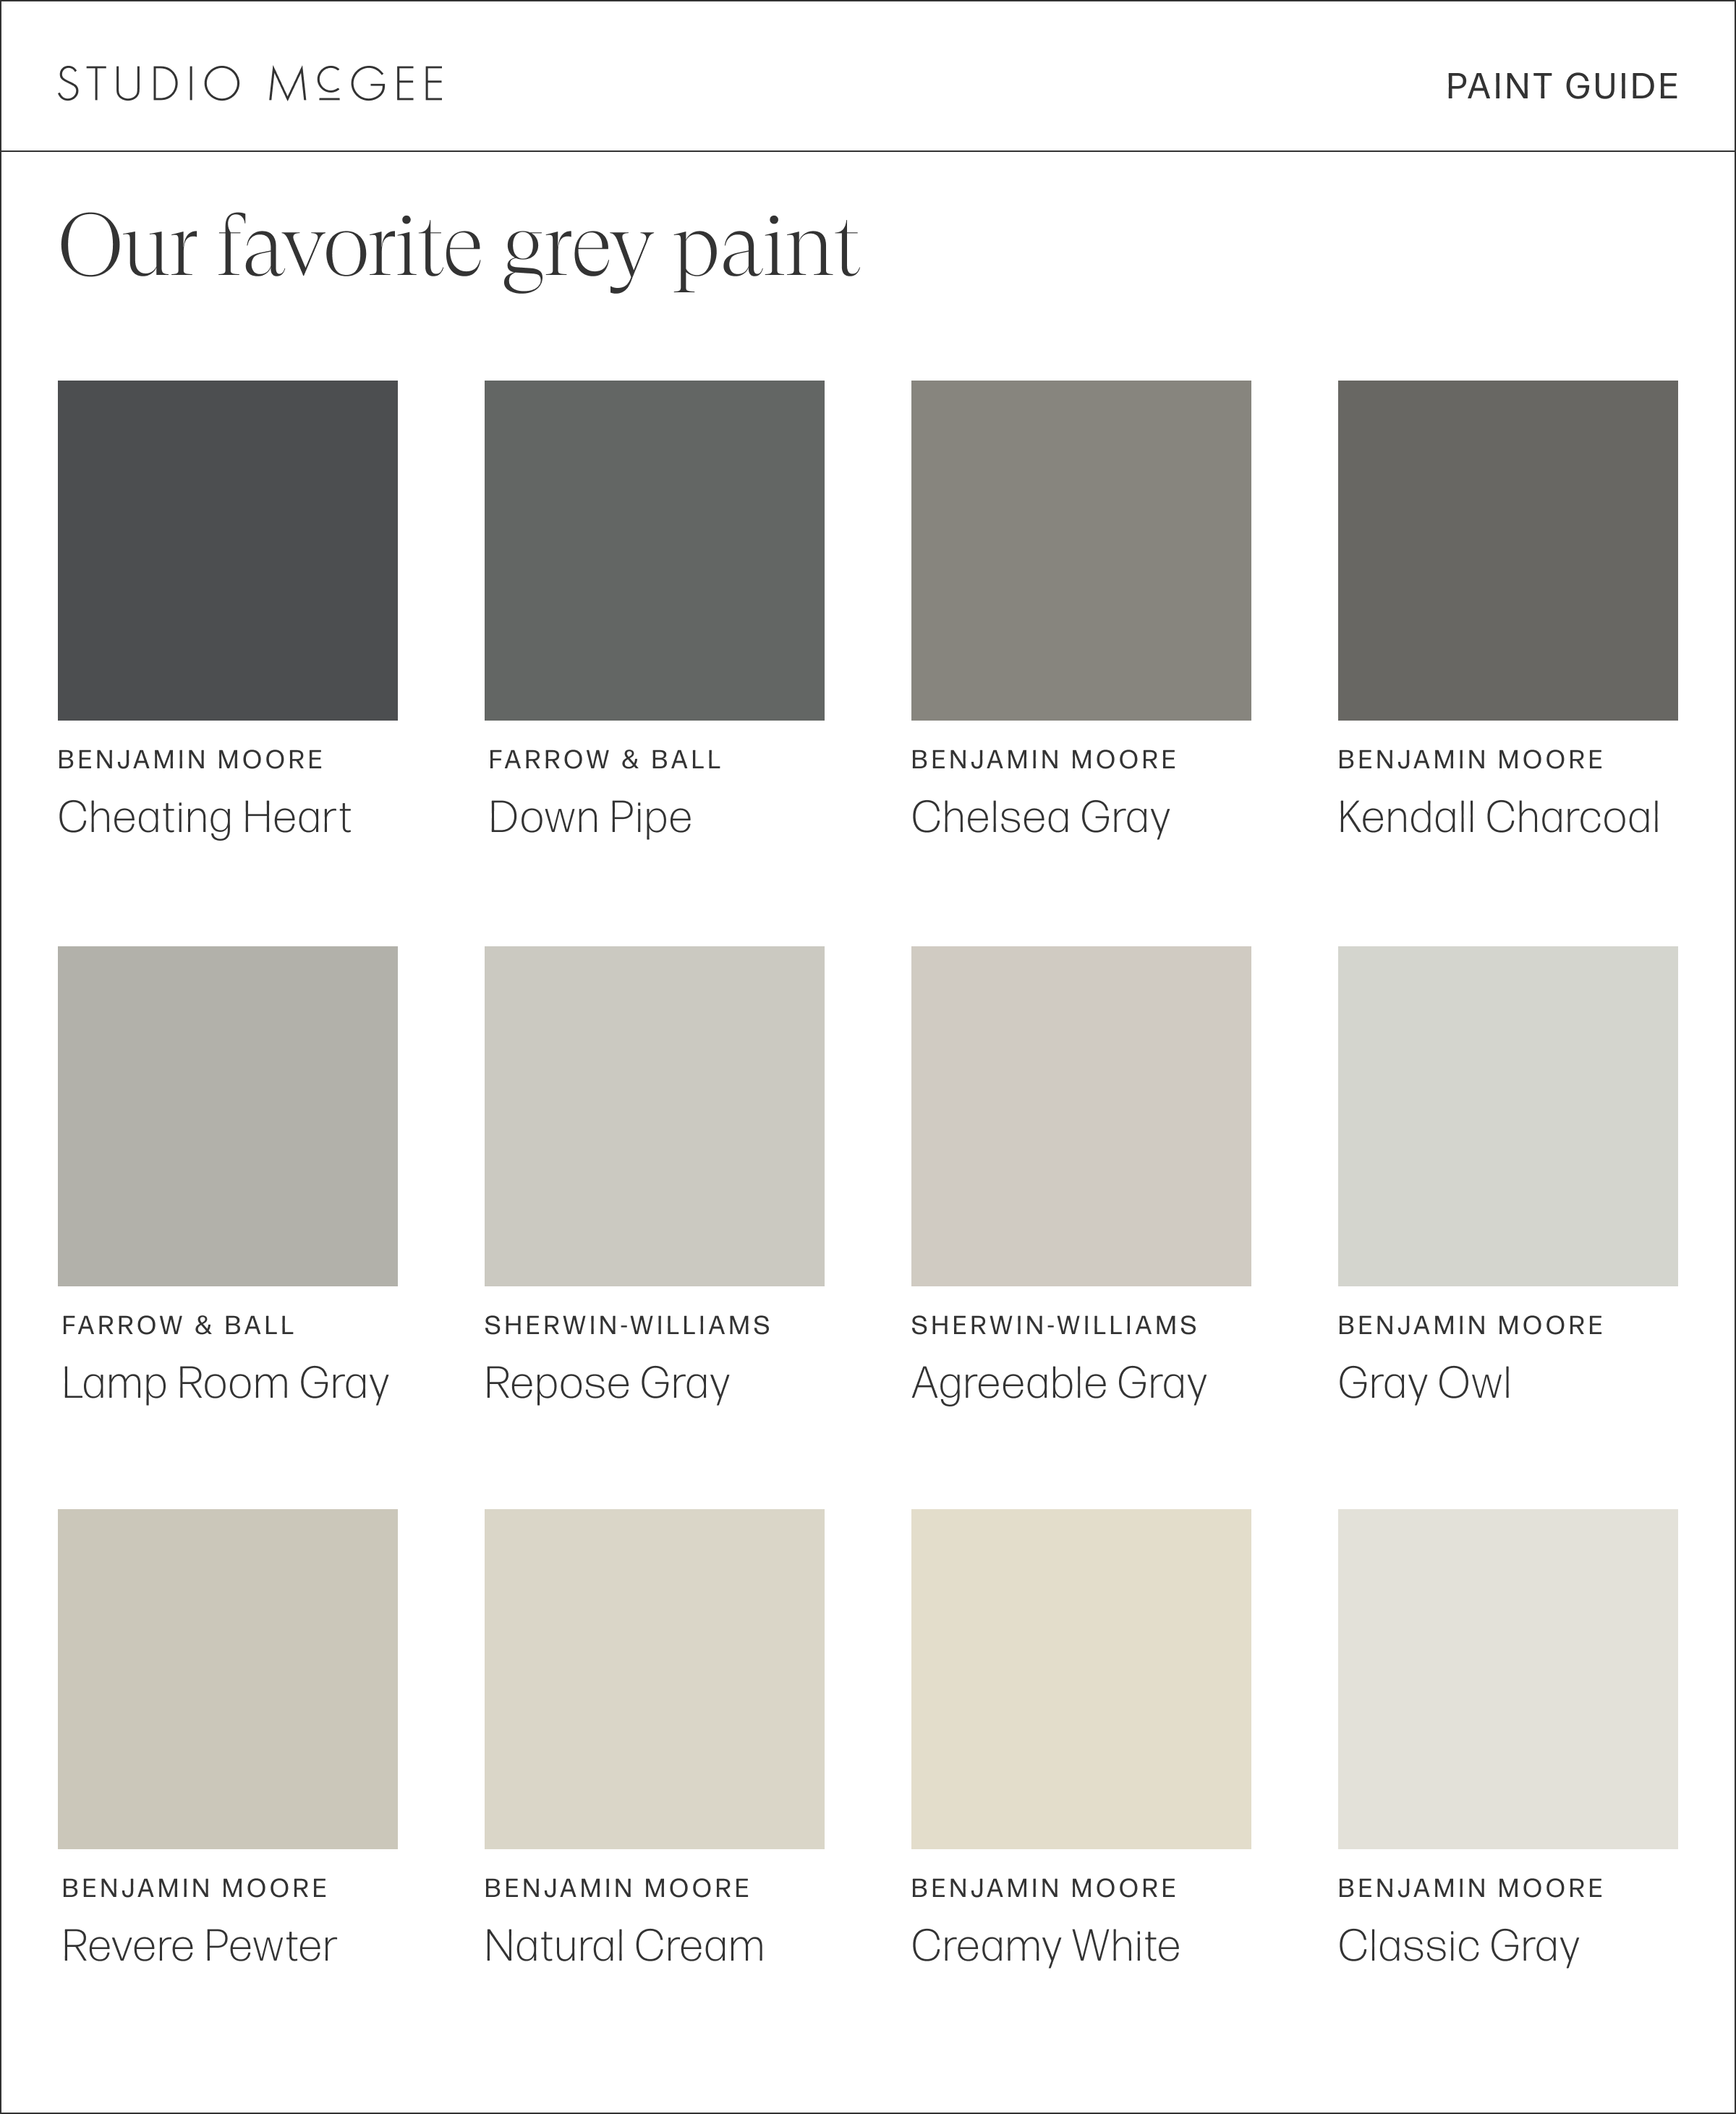 Our Favorite Grey Paint Colors Studio Mcgee